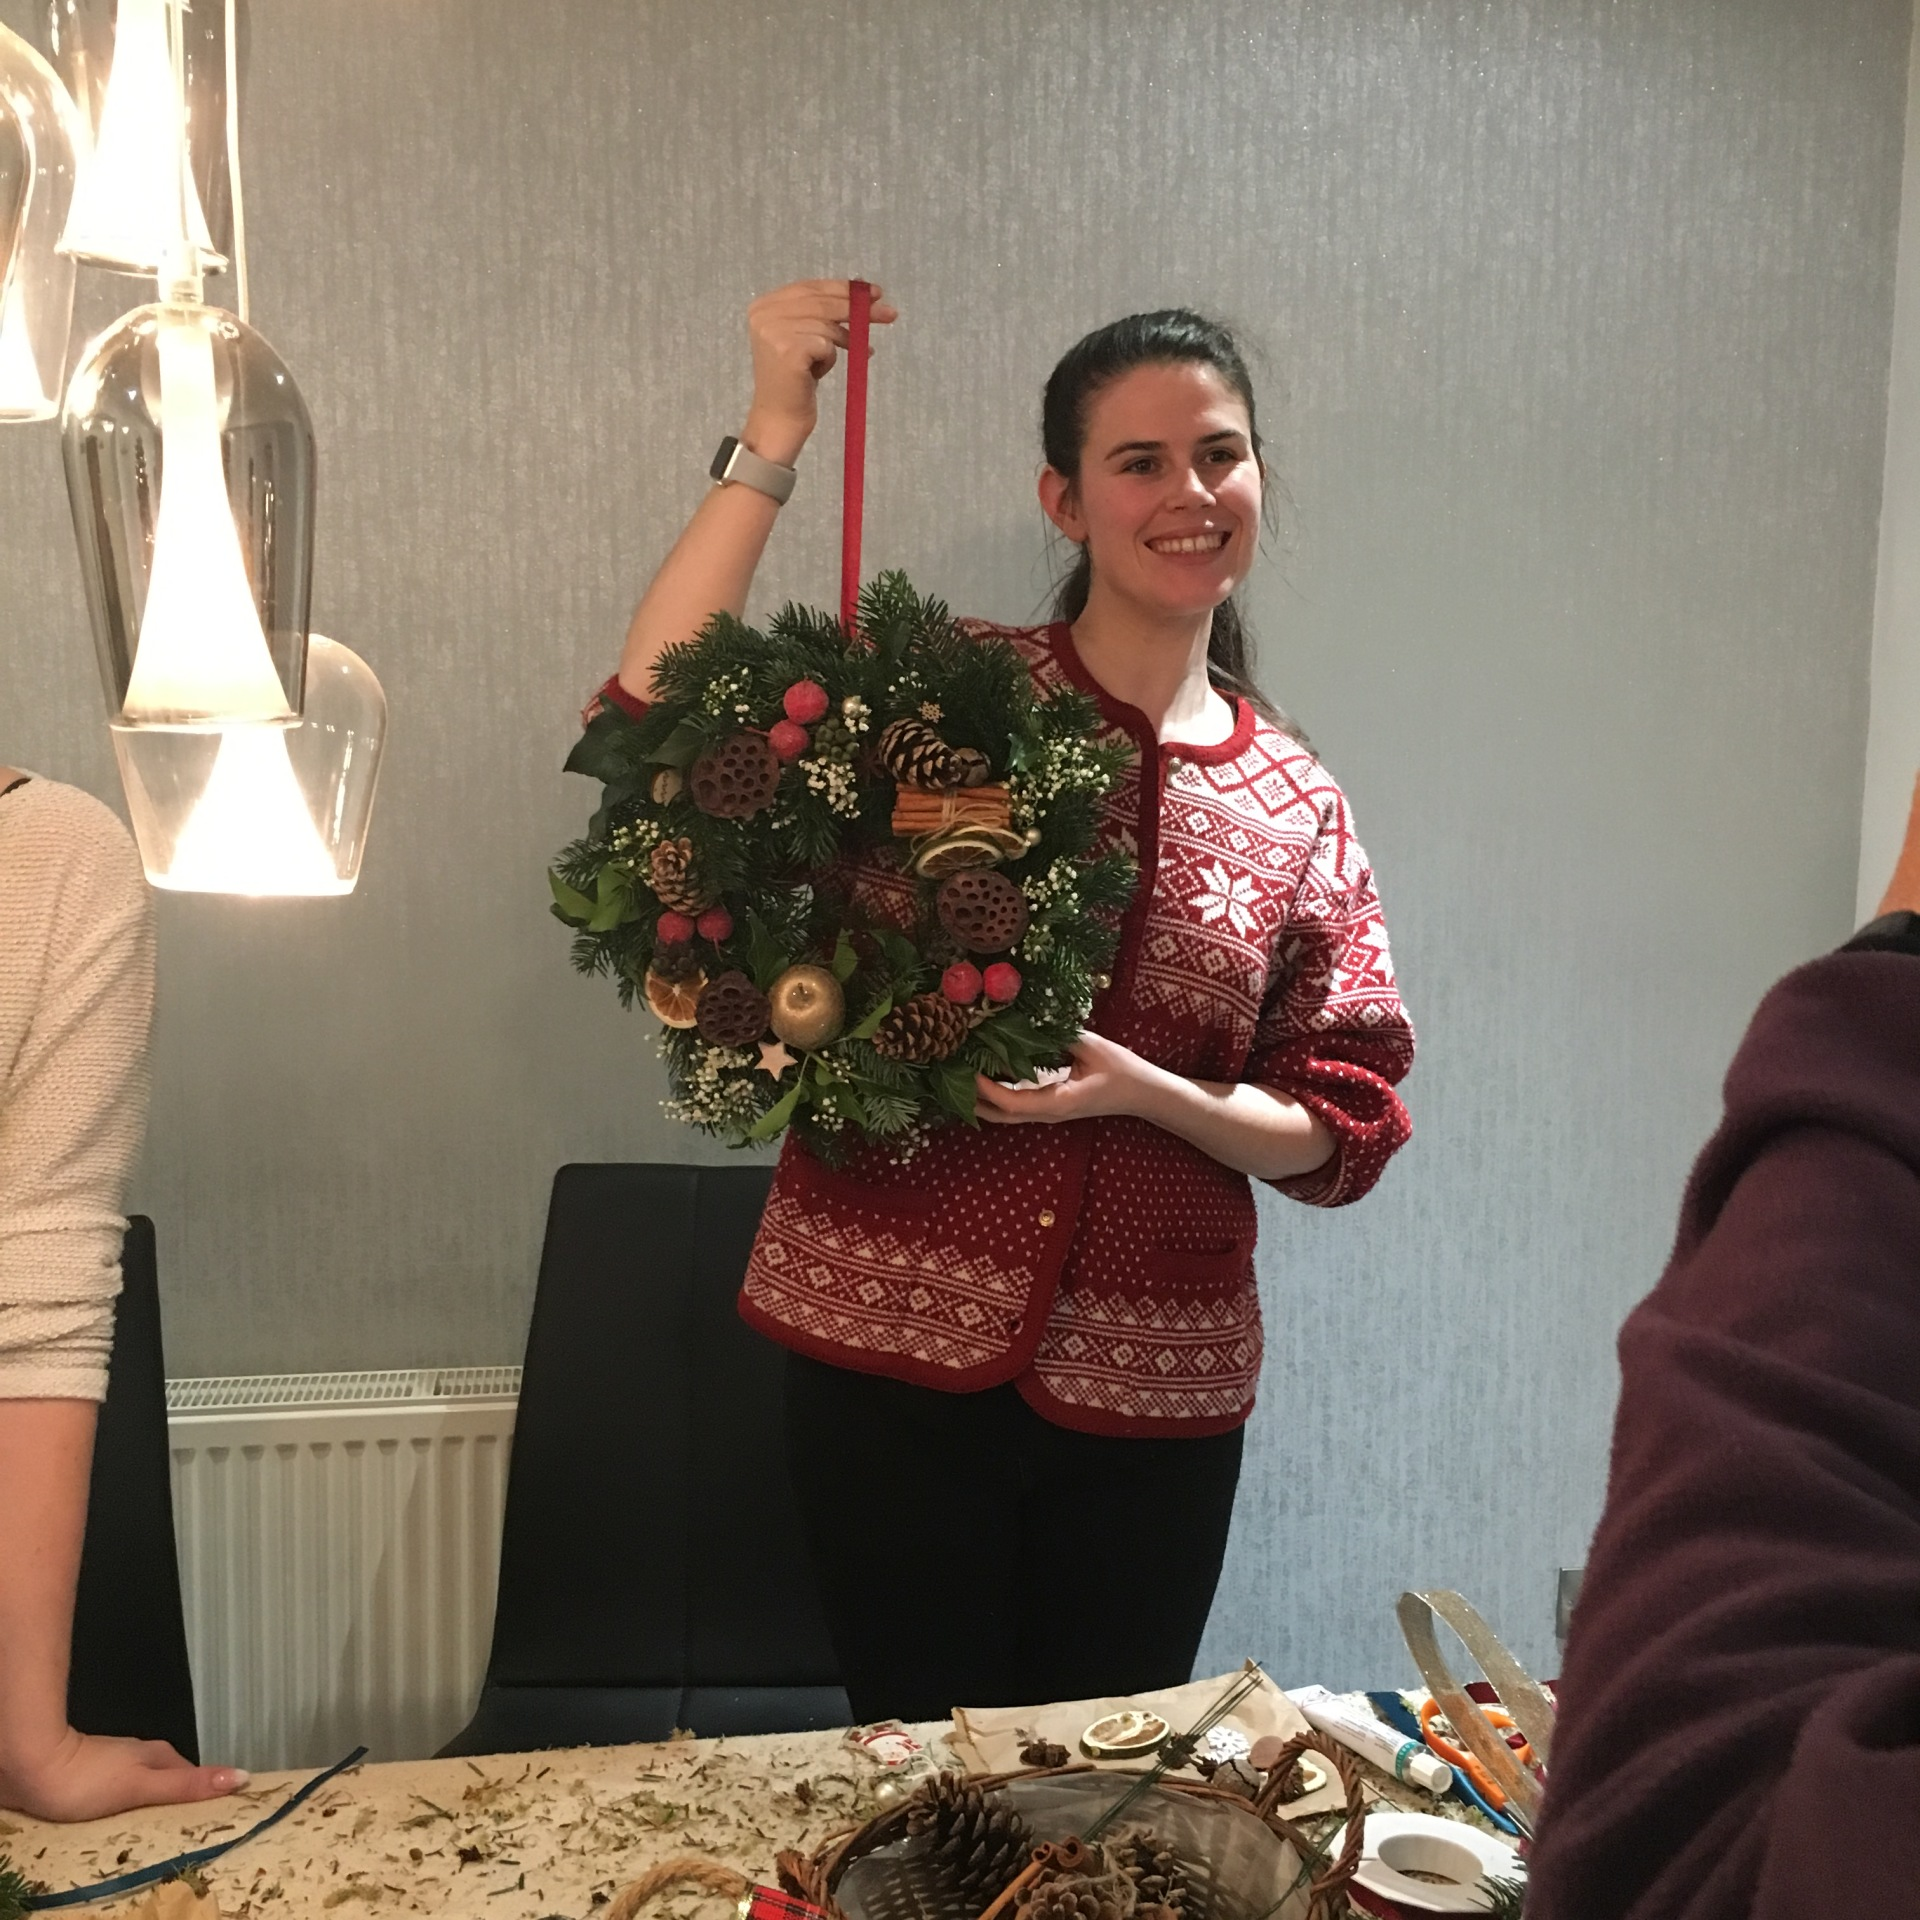 Getting her wreath on